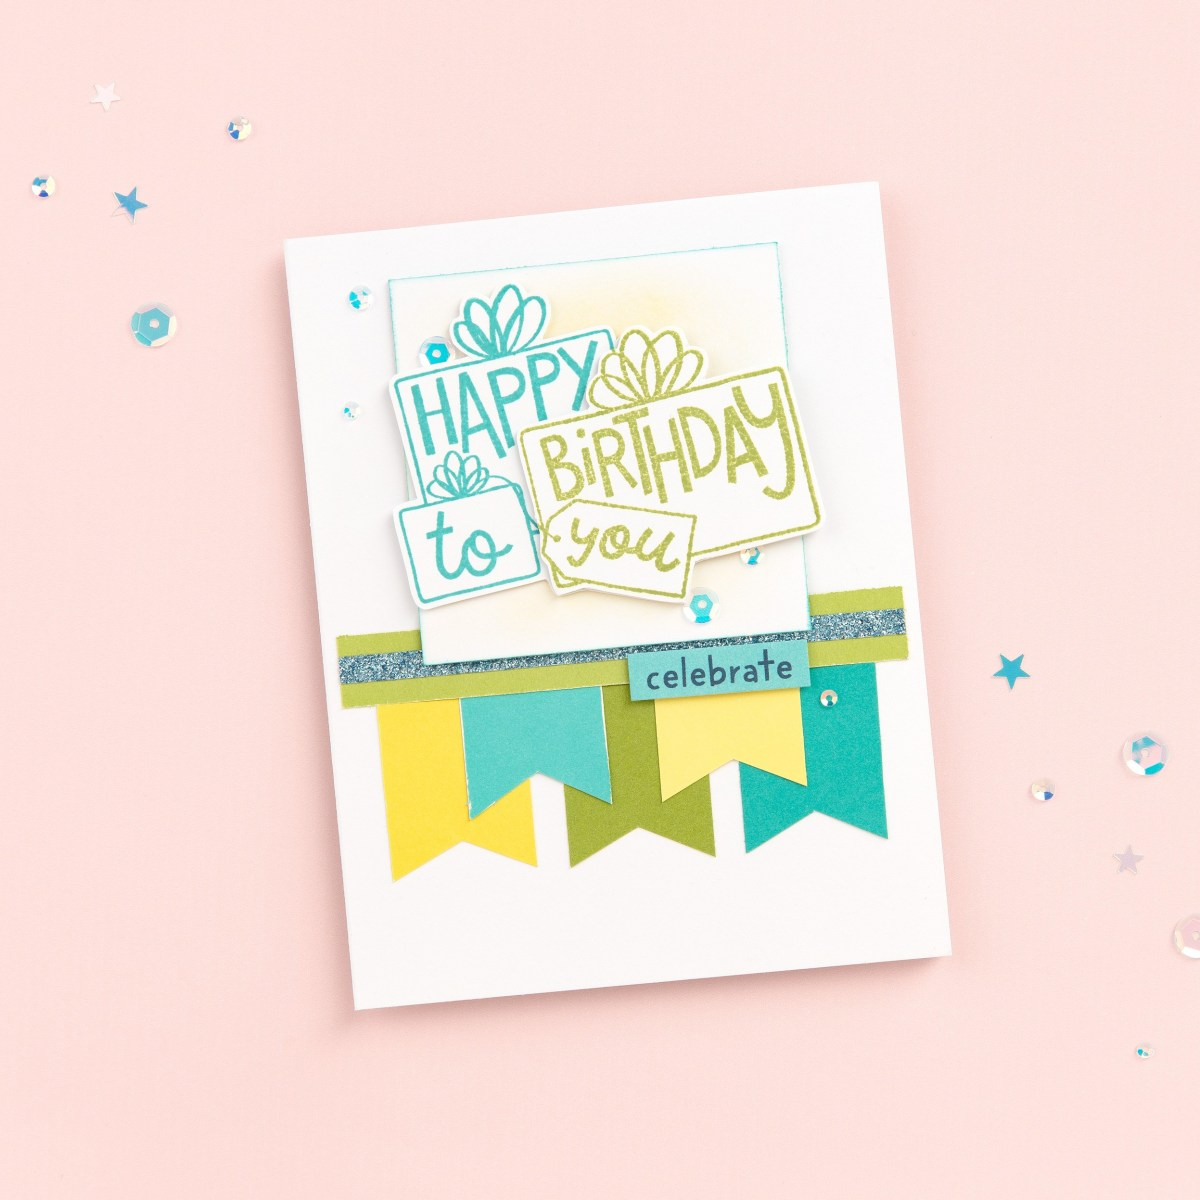 Cardstock Carnival #closetomyheart #ctmh #ctmhcardstockcarnival #cardstockcarnival #exclusivecolorpalette #exclusivecolourpalette #scrapbooking #cardmaking #papercrafting #memorykeeping #birthdaycard